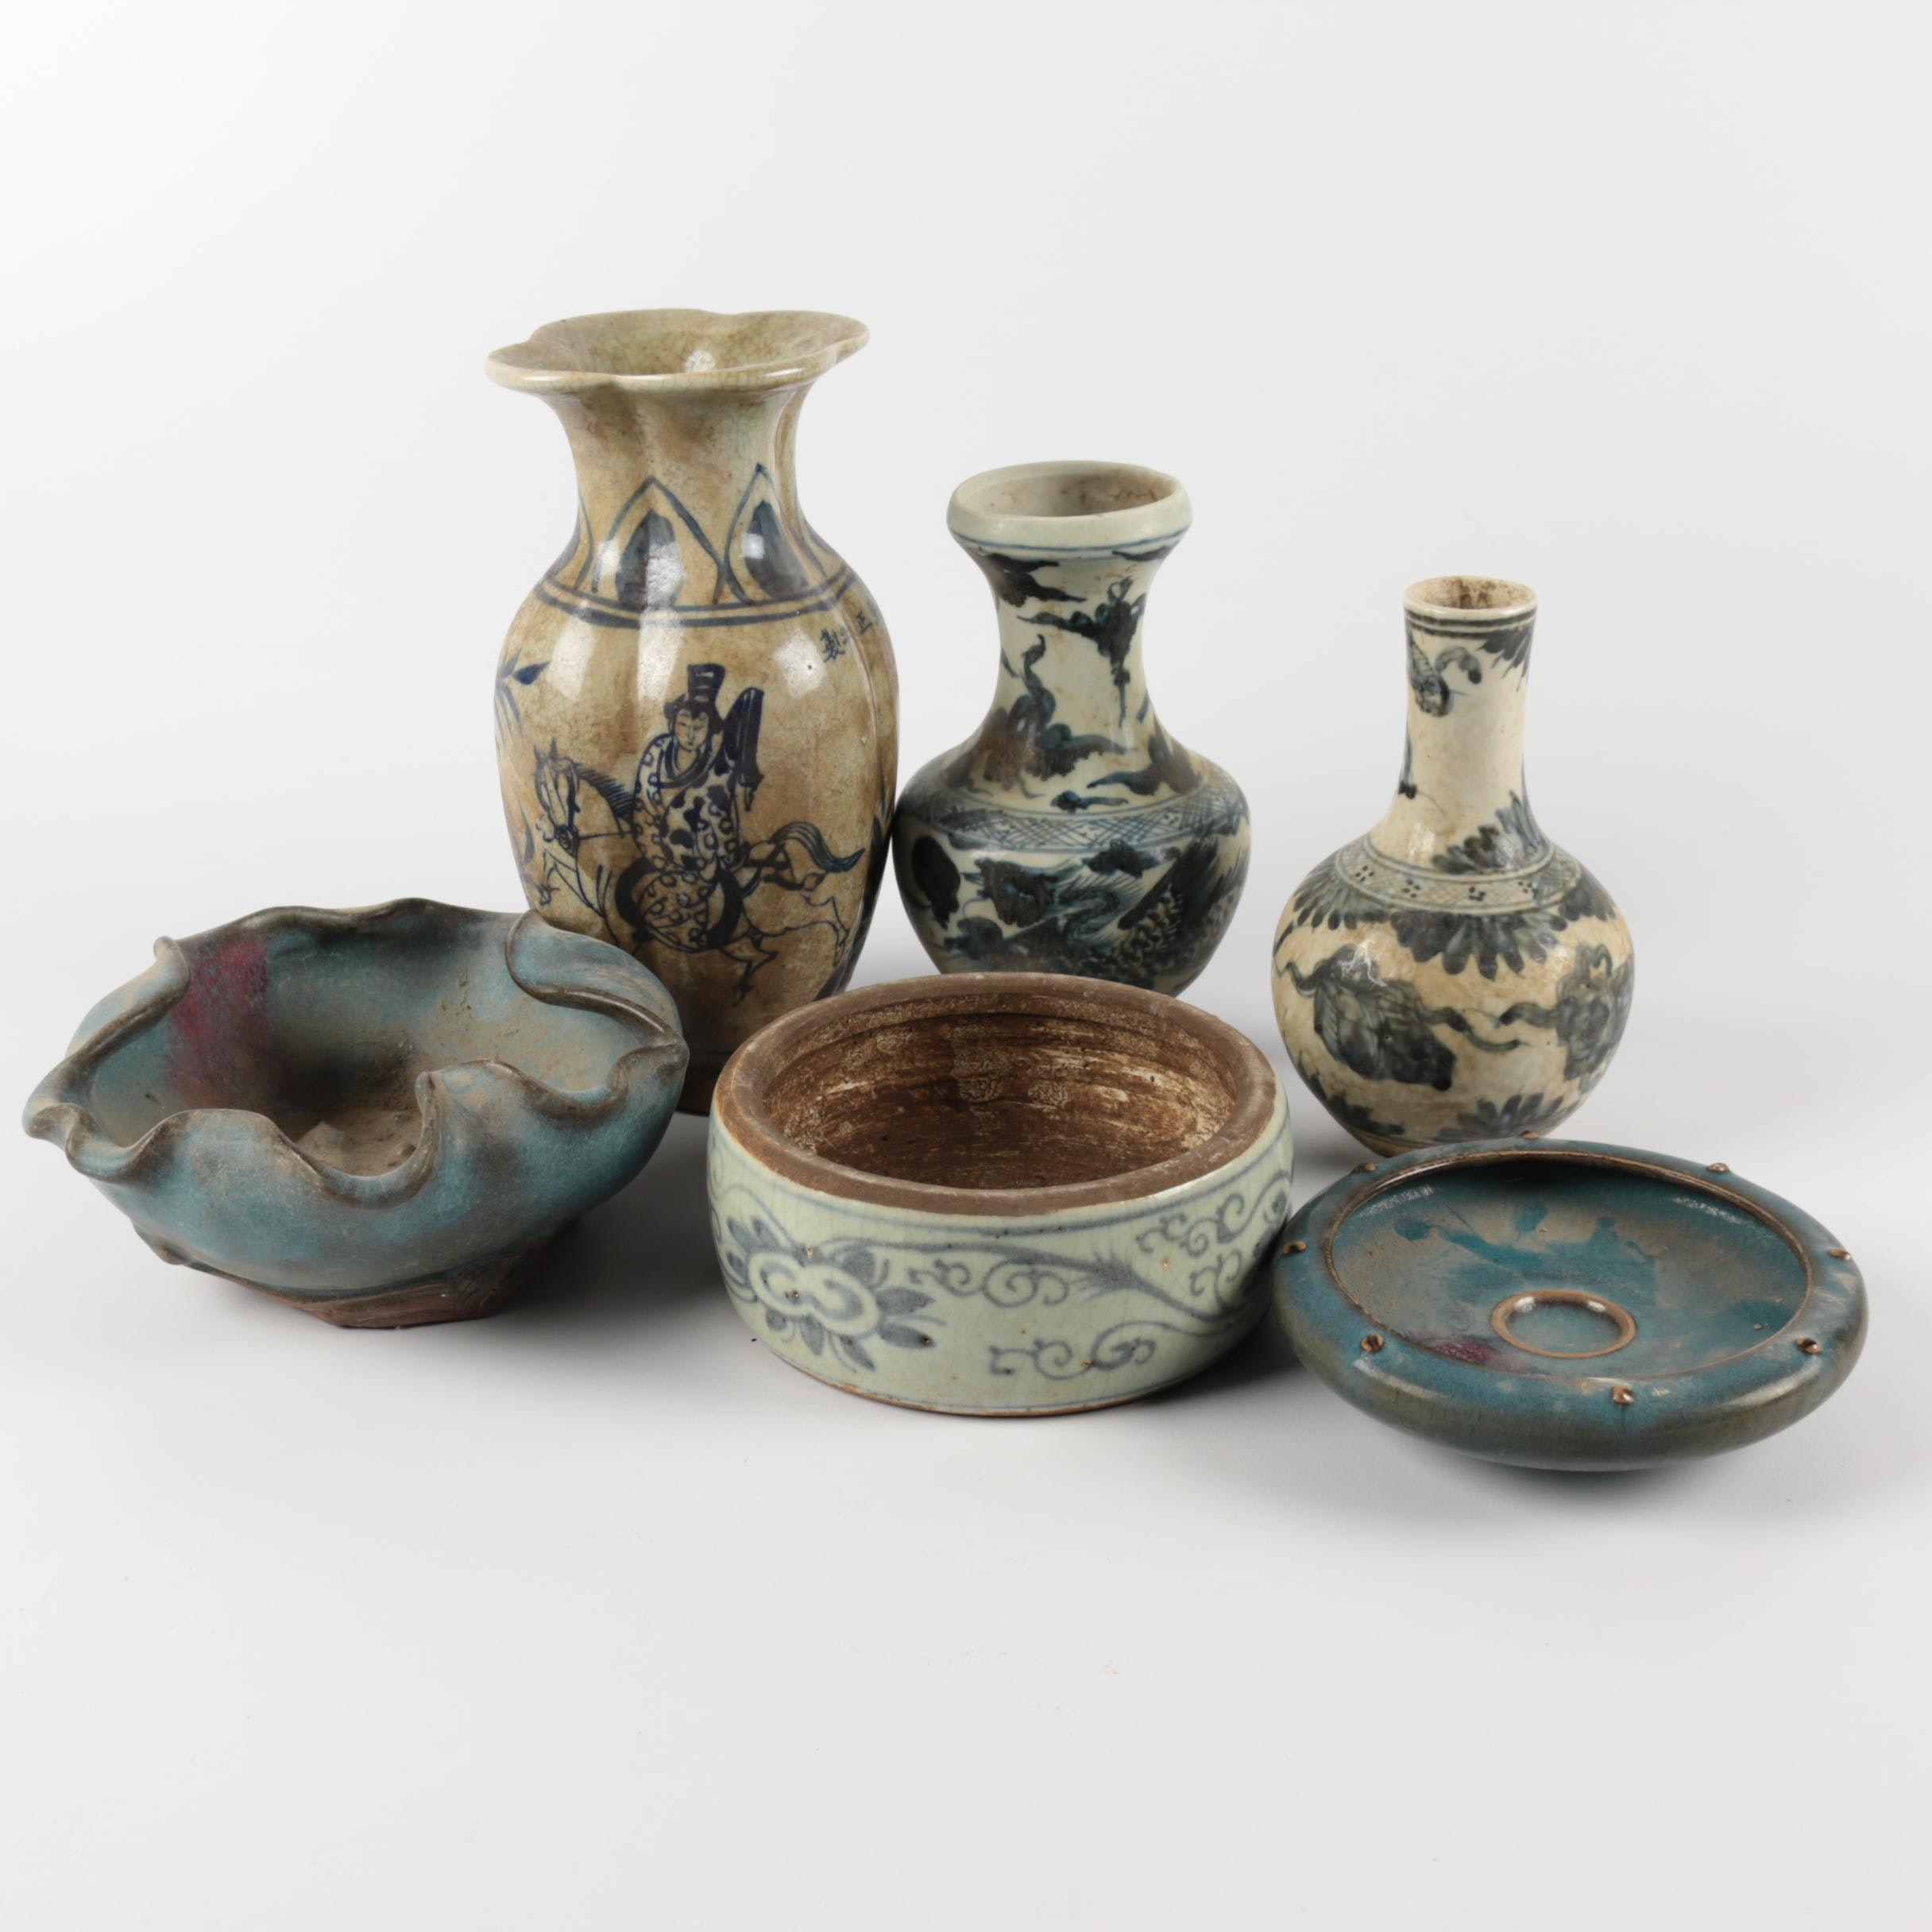 Chinese Decorative Ceramic Vases and Bowls